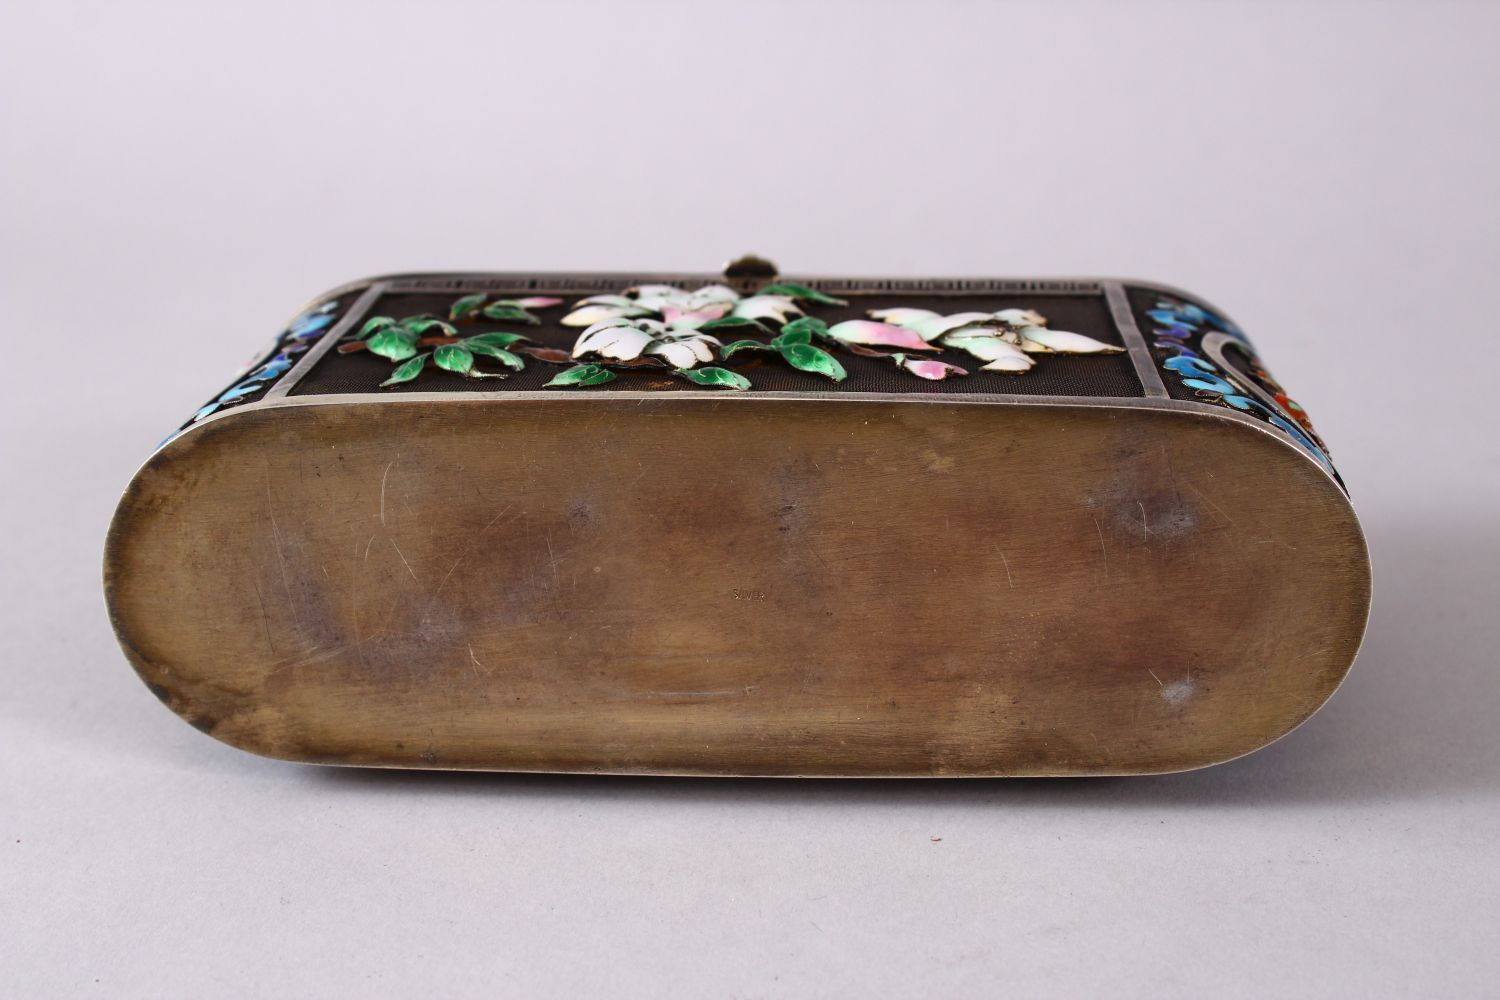 A CHINESE SILVER & ENAMEL LIDDED BOX, with enamel decoration of native flora, base marked silver, - Image 9 of 10